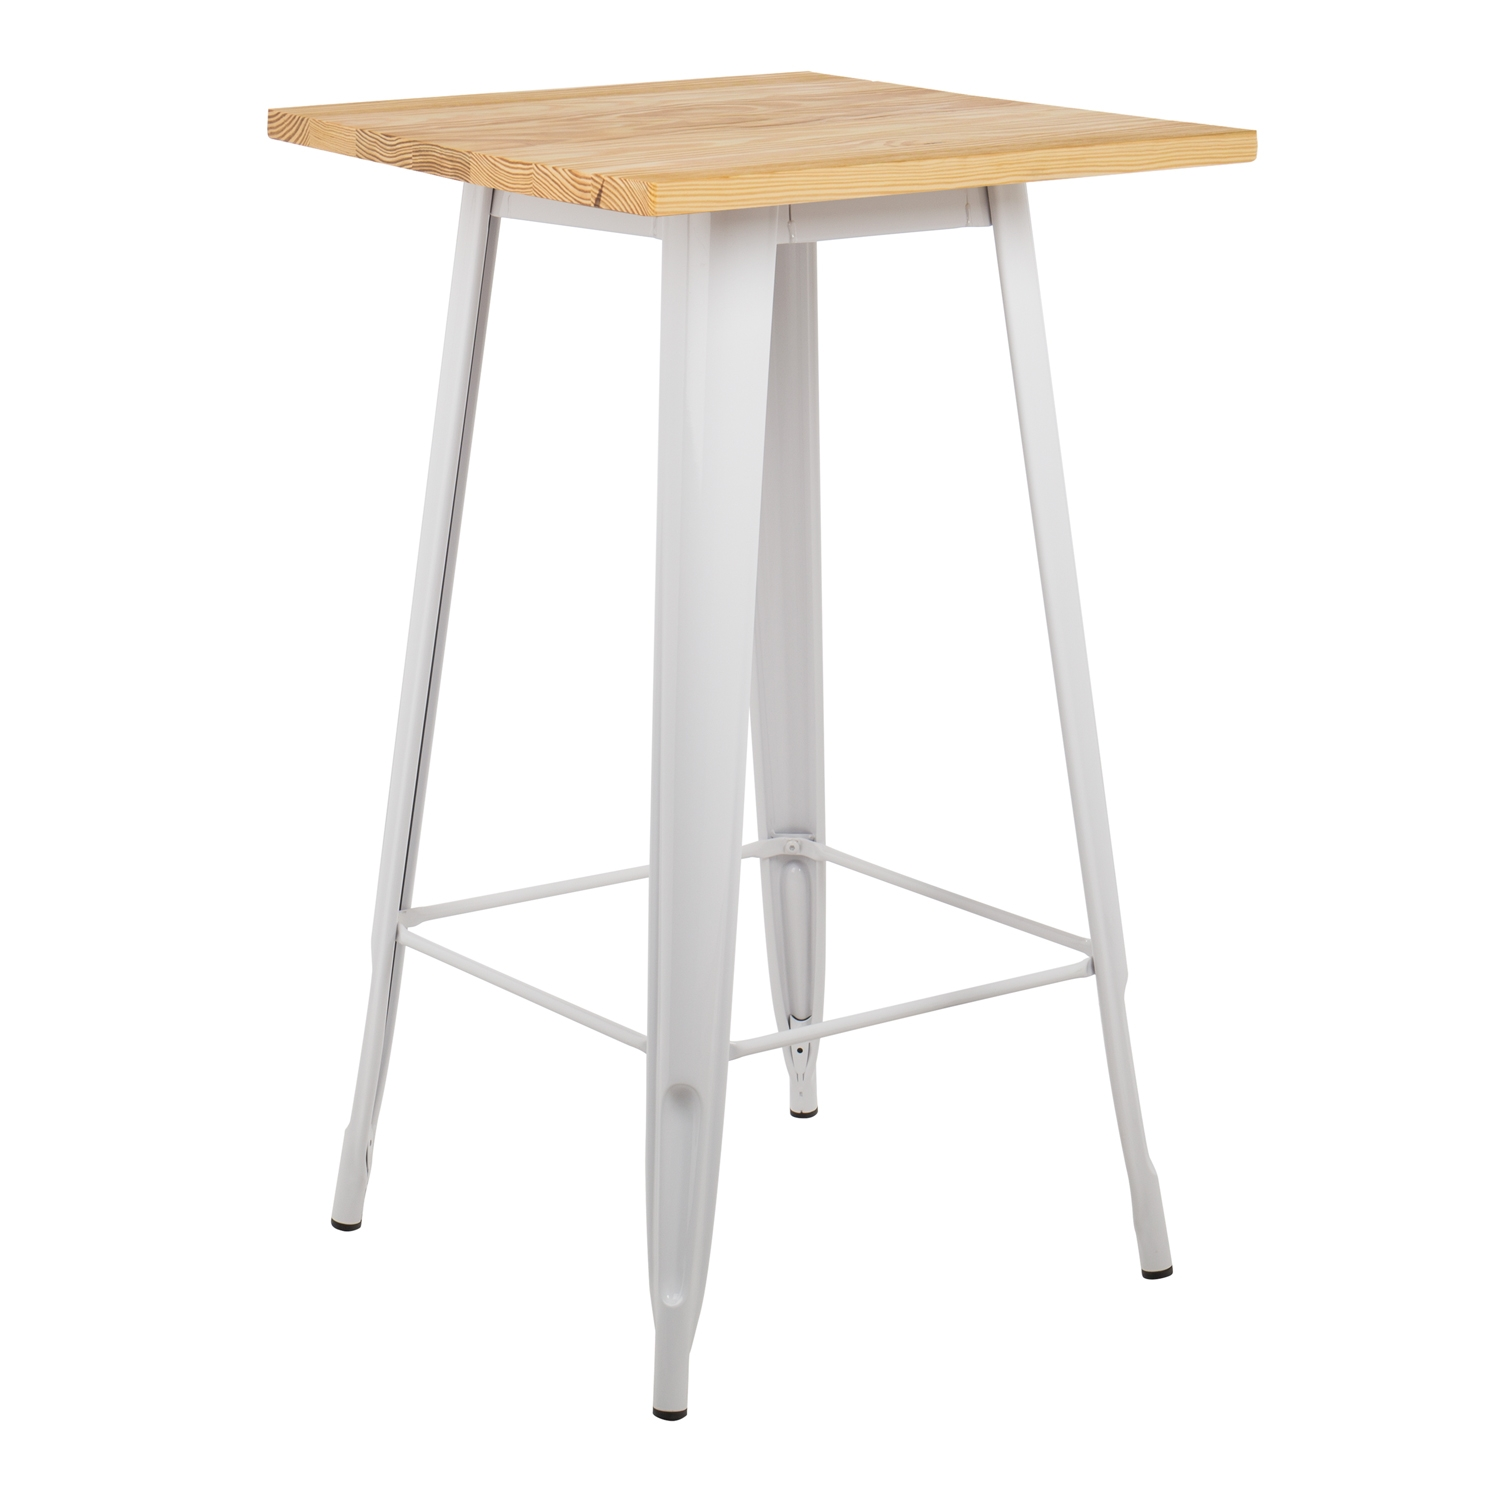 Wooden LIX High Table   SKLUM